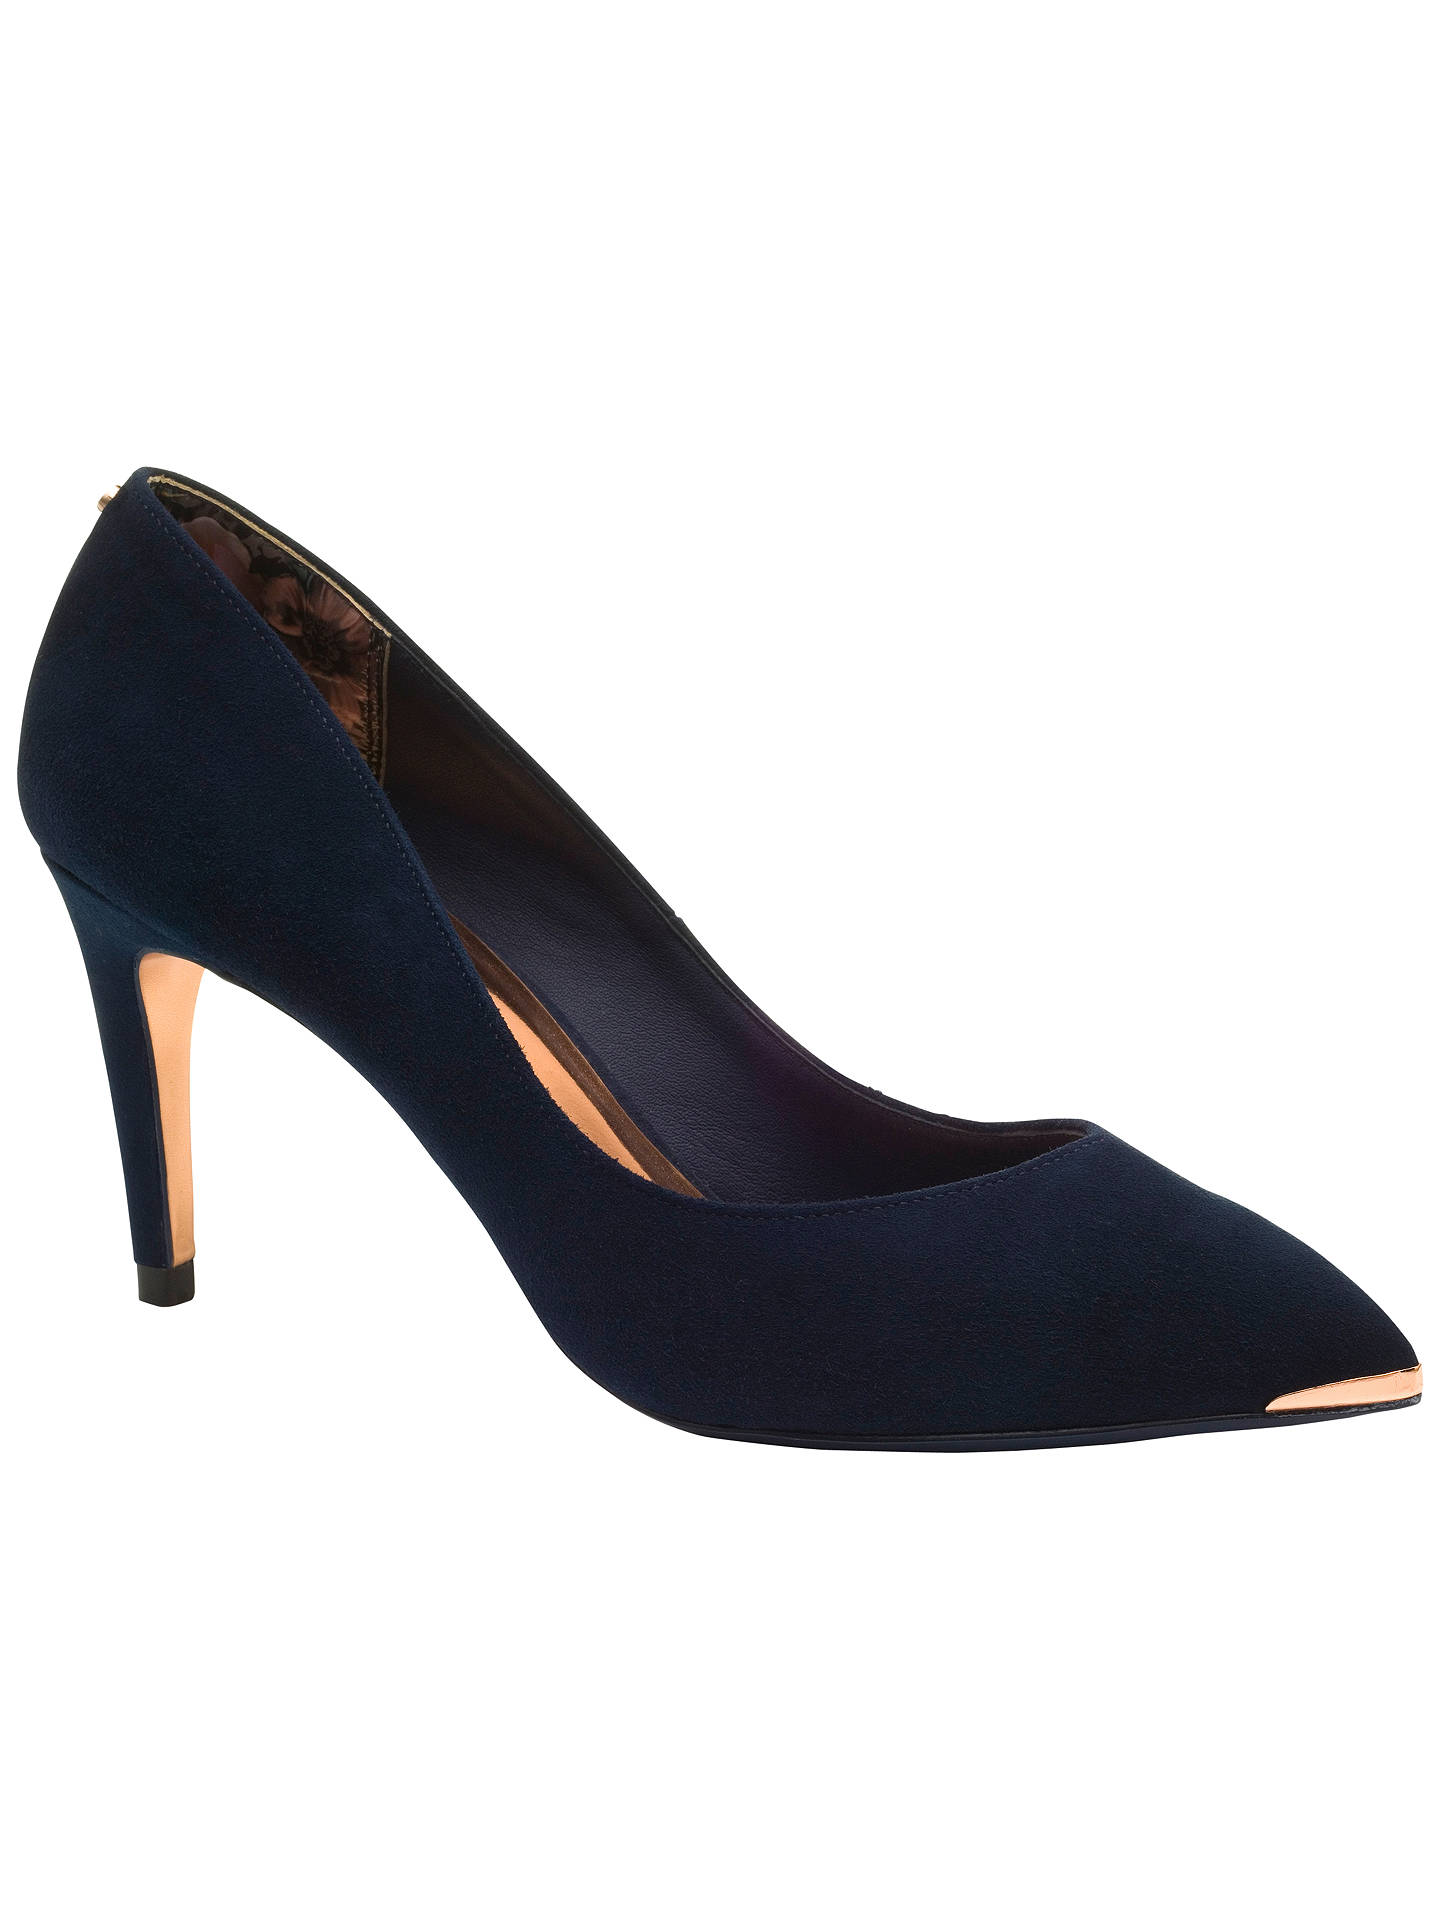 5d1cc198ac6 Ted Baker Monirra Pointed Court Shoes at John Lewis & Partners